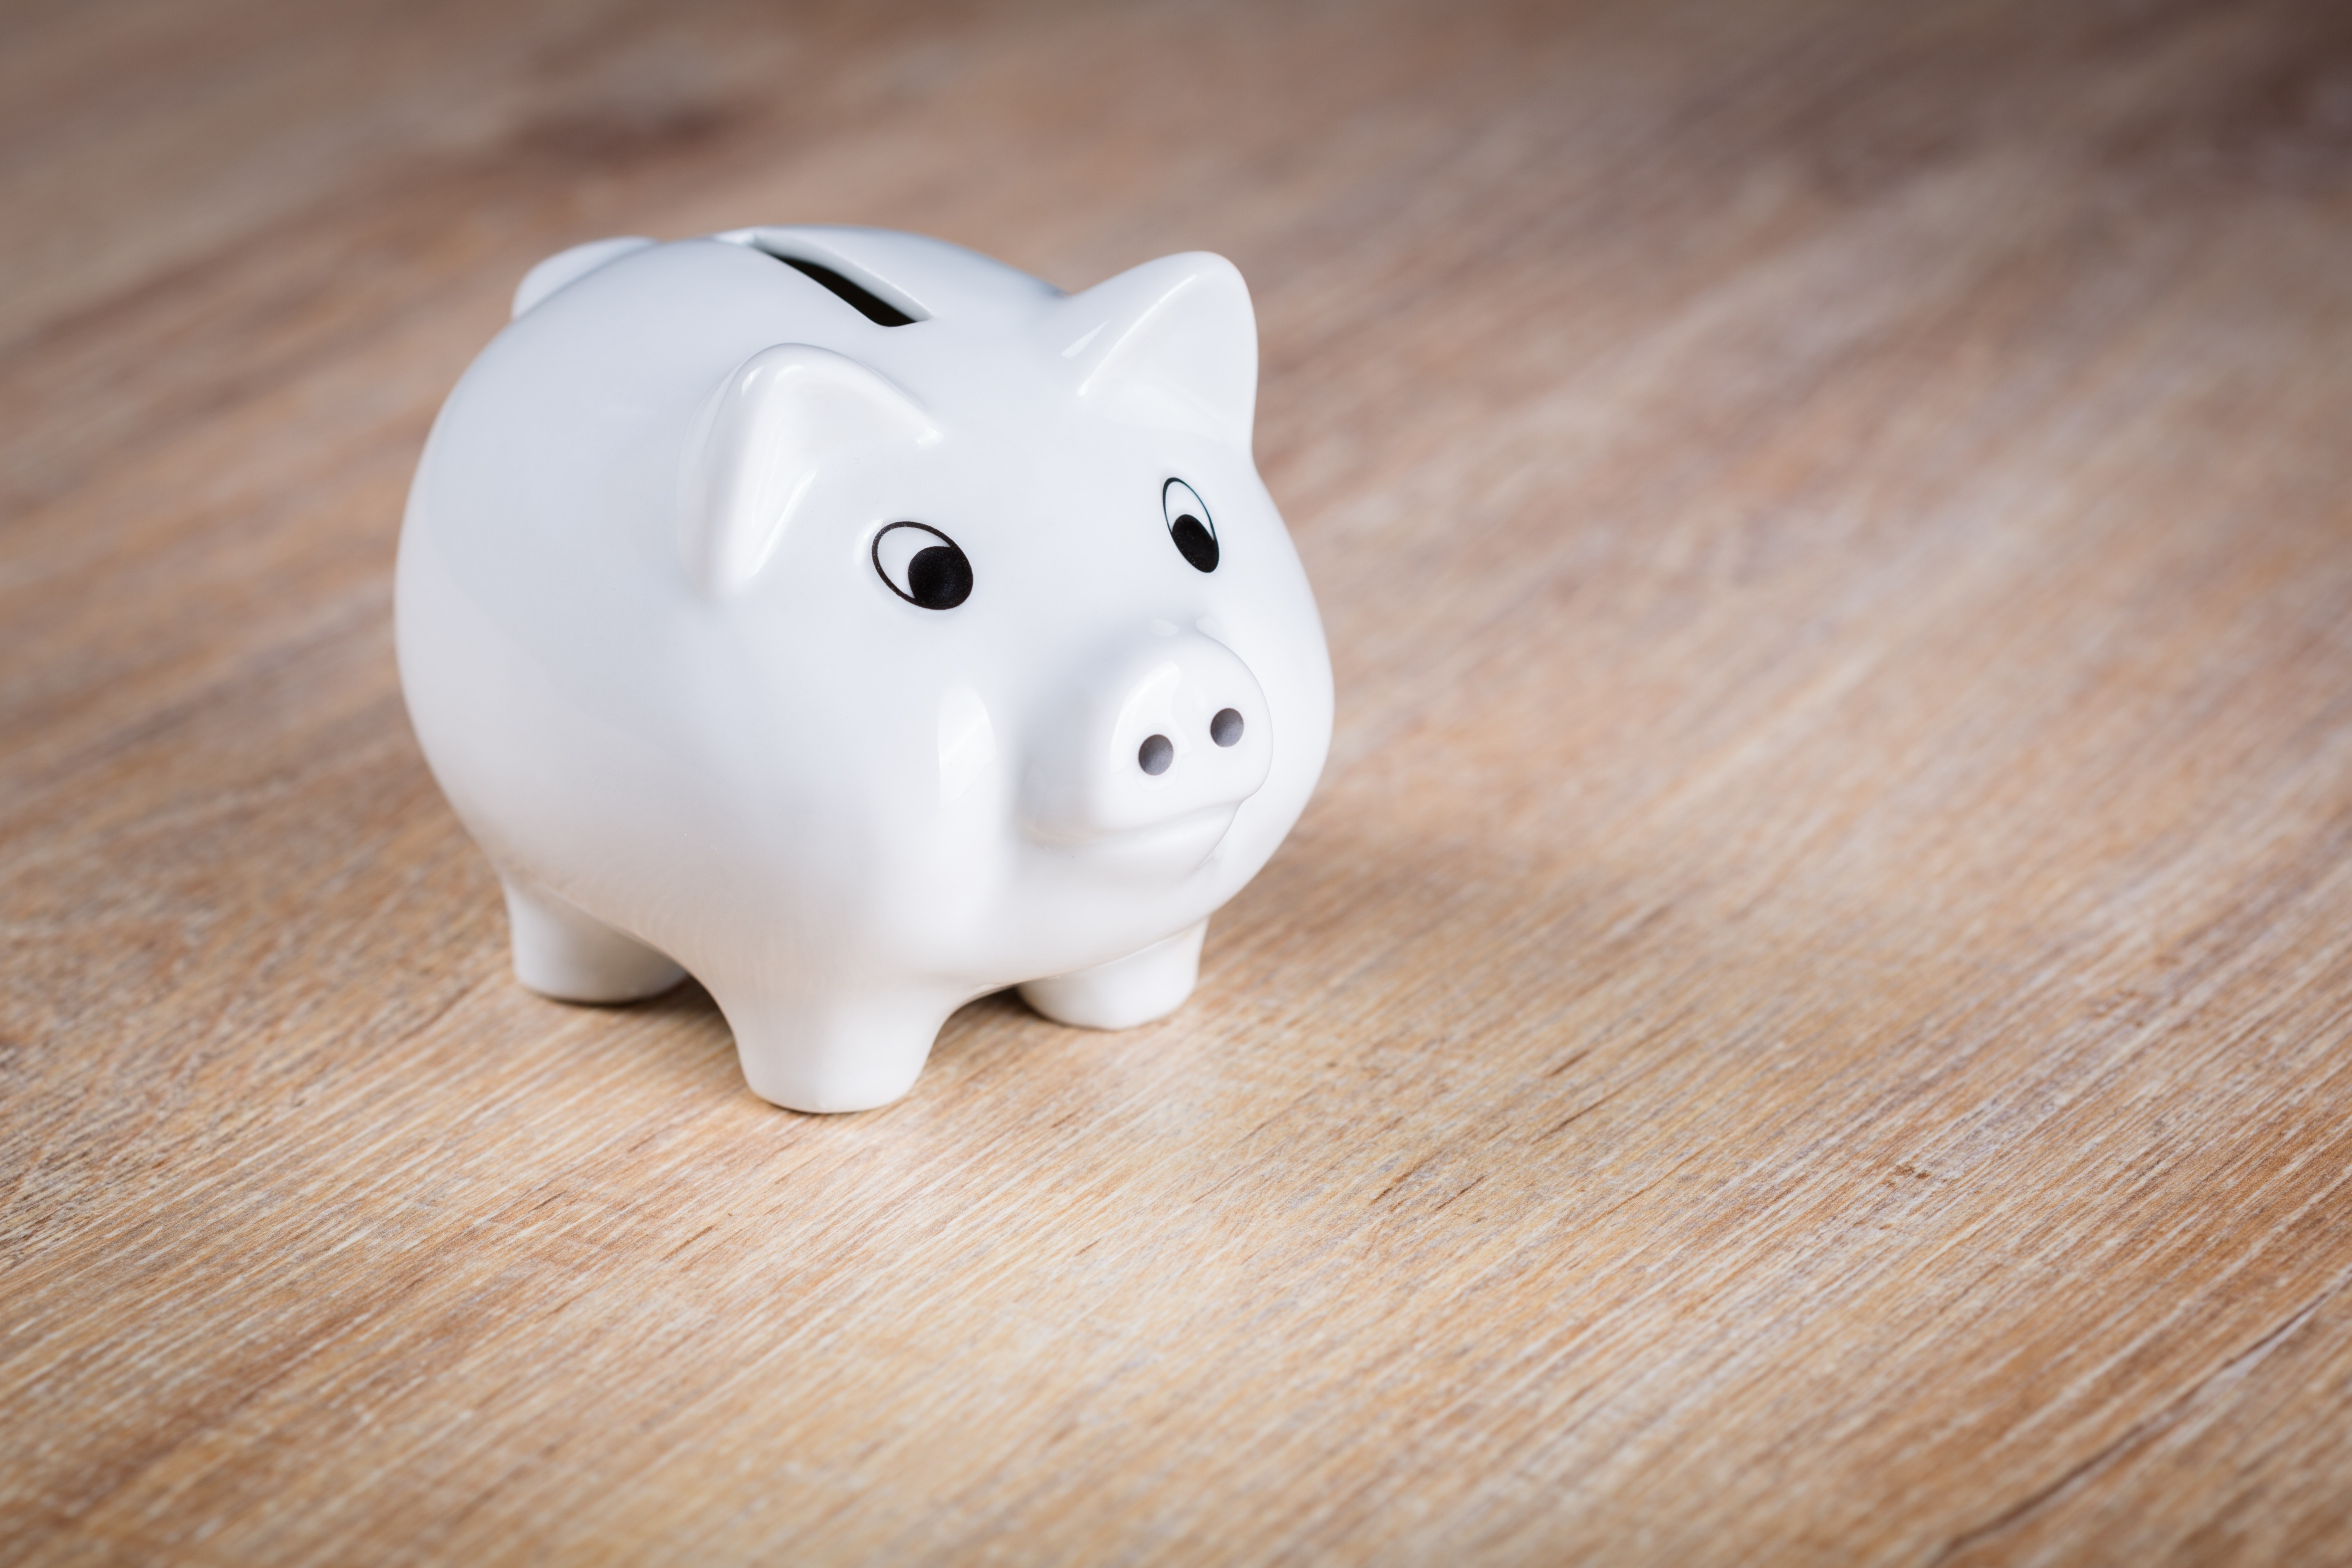 Read more about the article Should I Use Kiwisaver Or Qualifying Superannuation Funds To Secure A Mortgage?